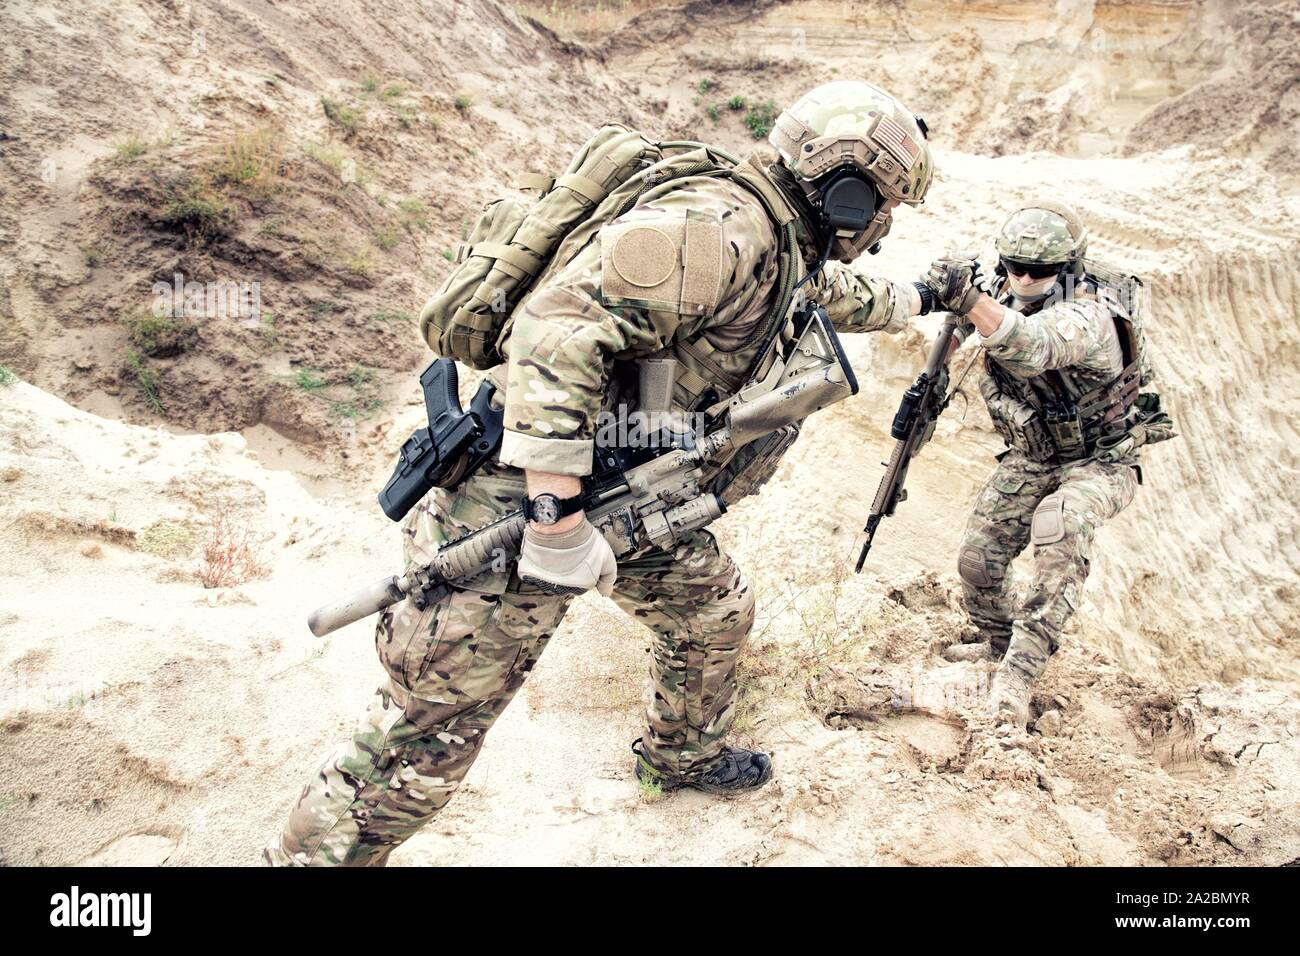 US ranger, modern infantryman, special reconnaissance team member or military scout in ammunition, armed with service rifle helping brother in arms Stock Photo